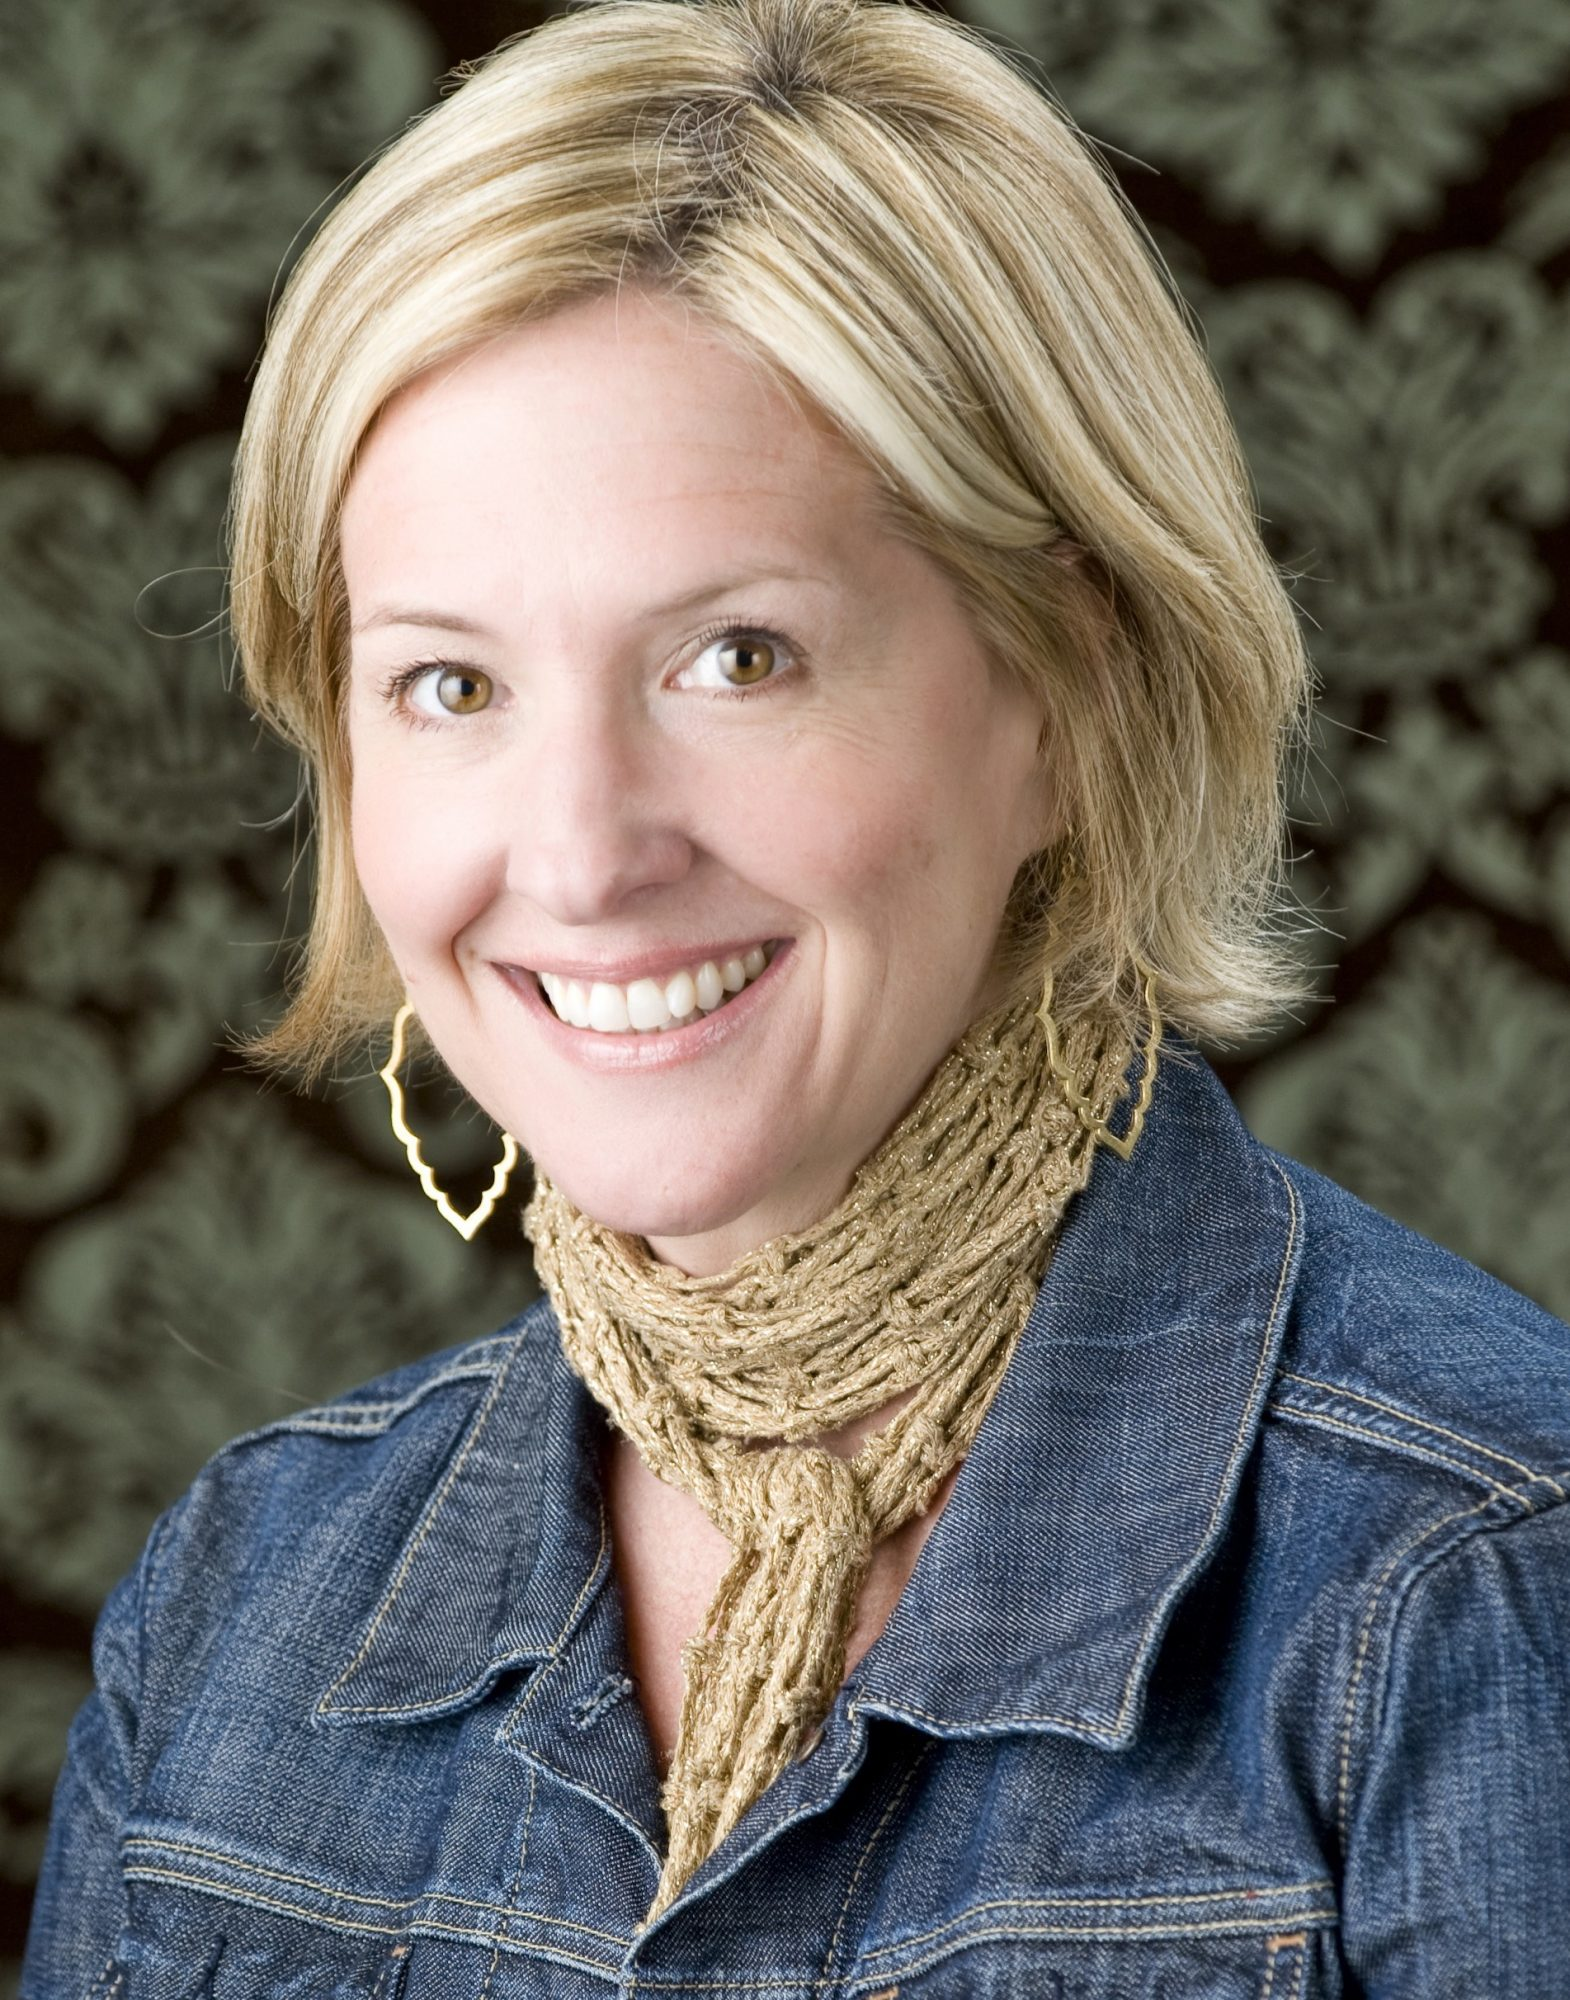 brene-brown-headshot